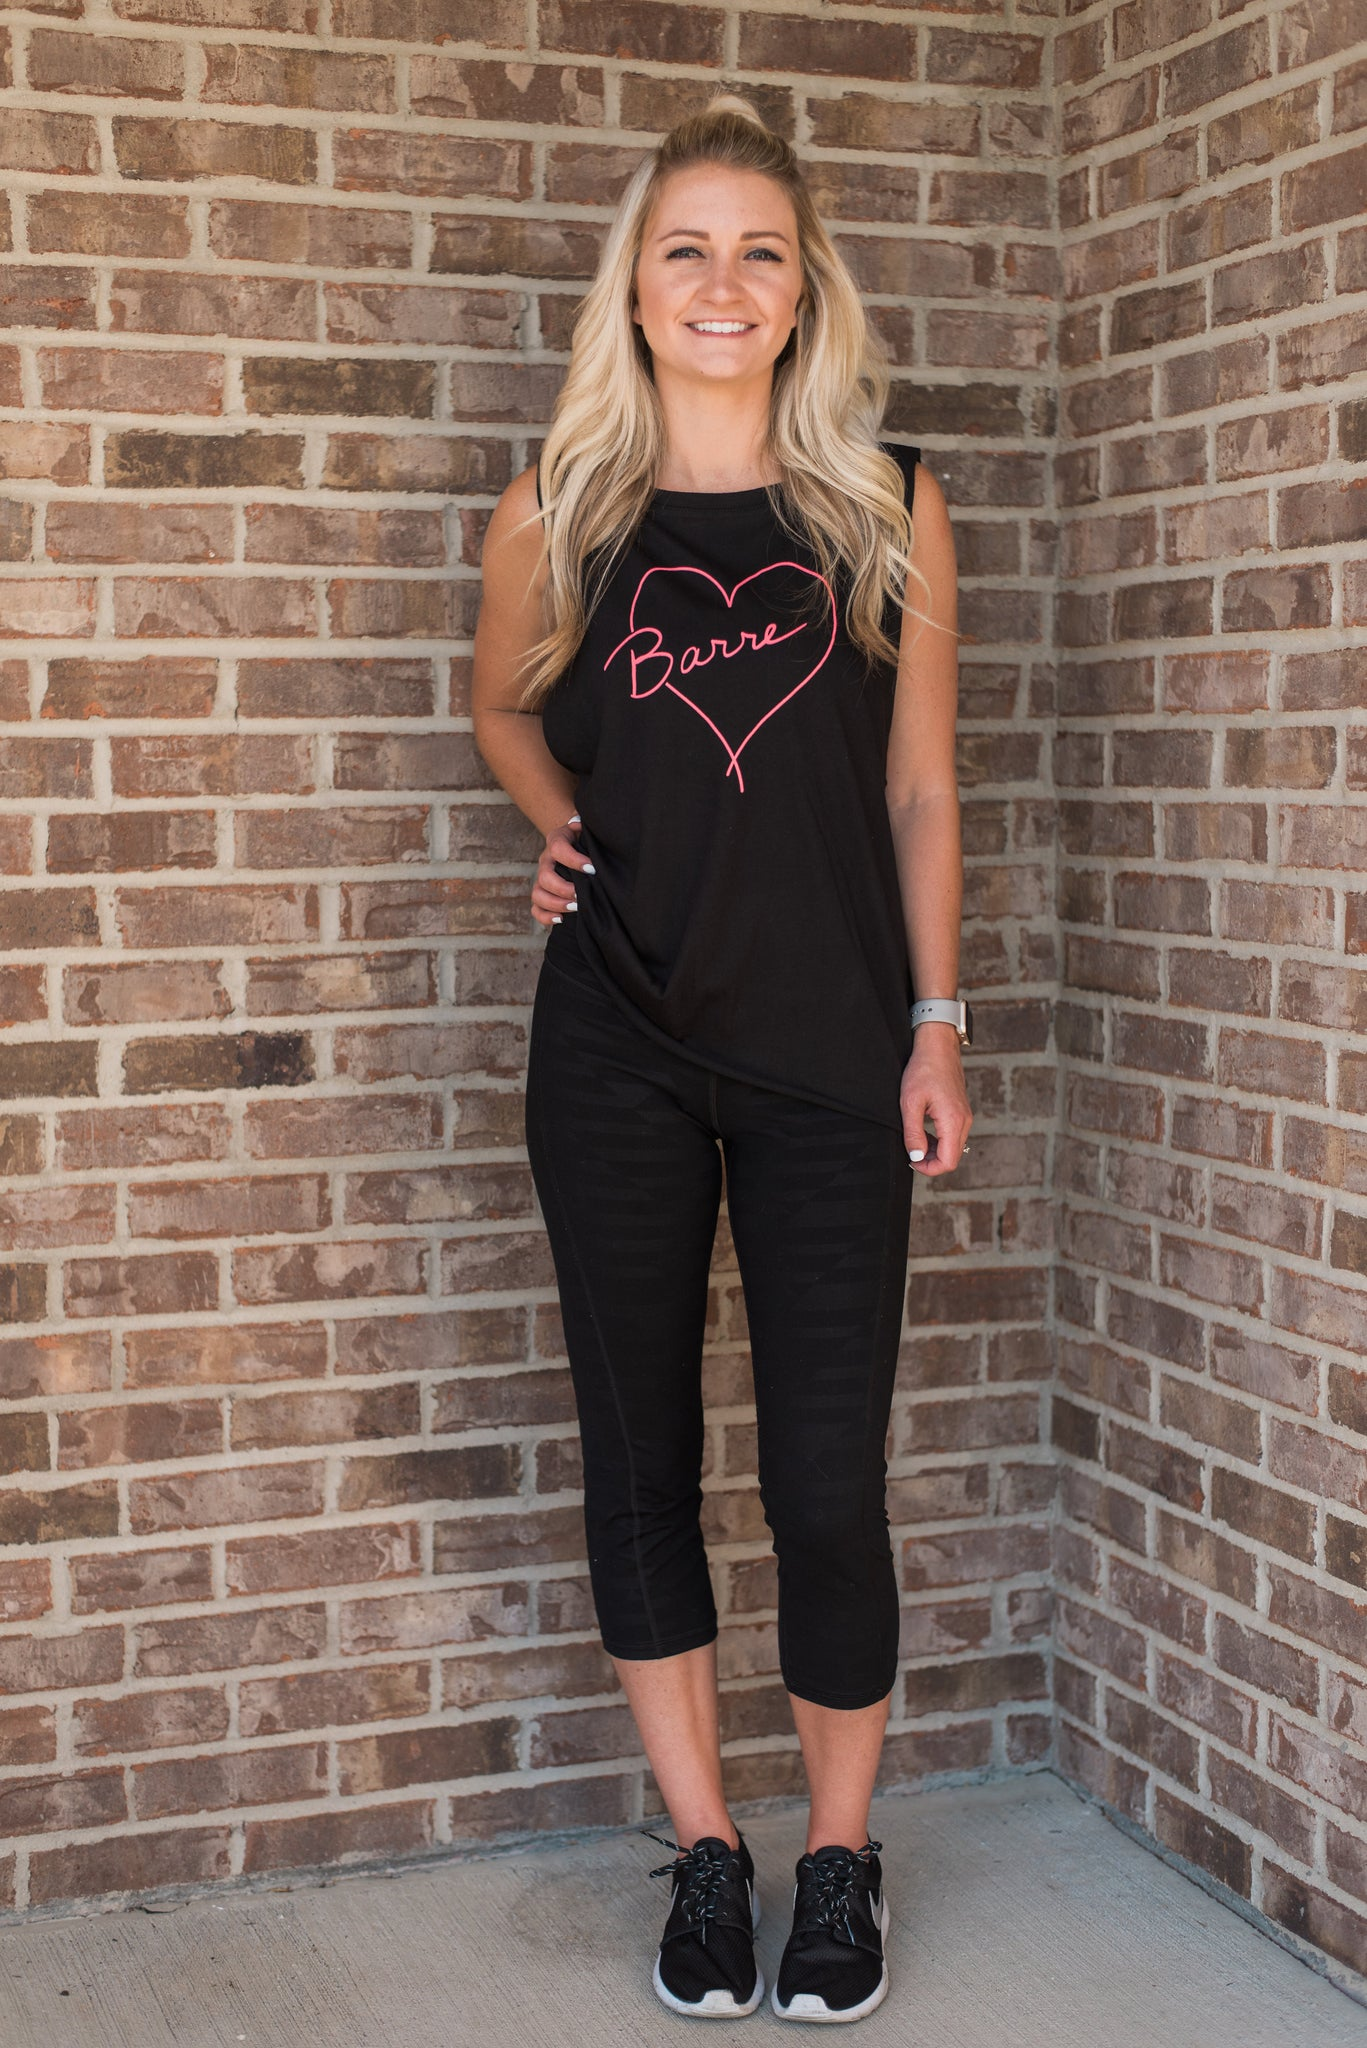 Black, lightweight, dropped arm holes, athleisure wear - Barre Love Tee